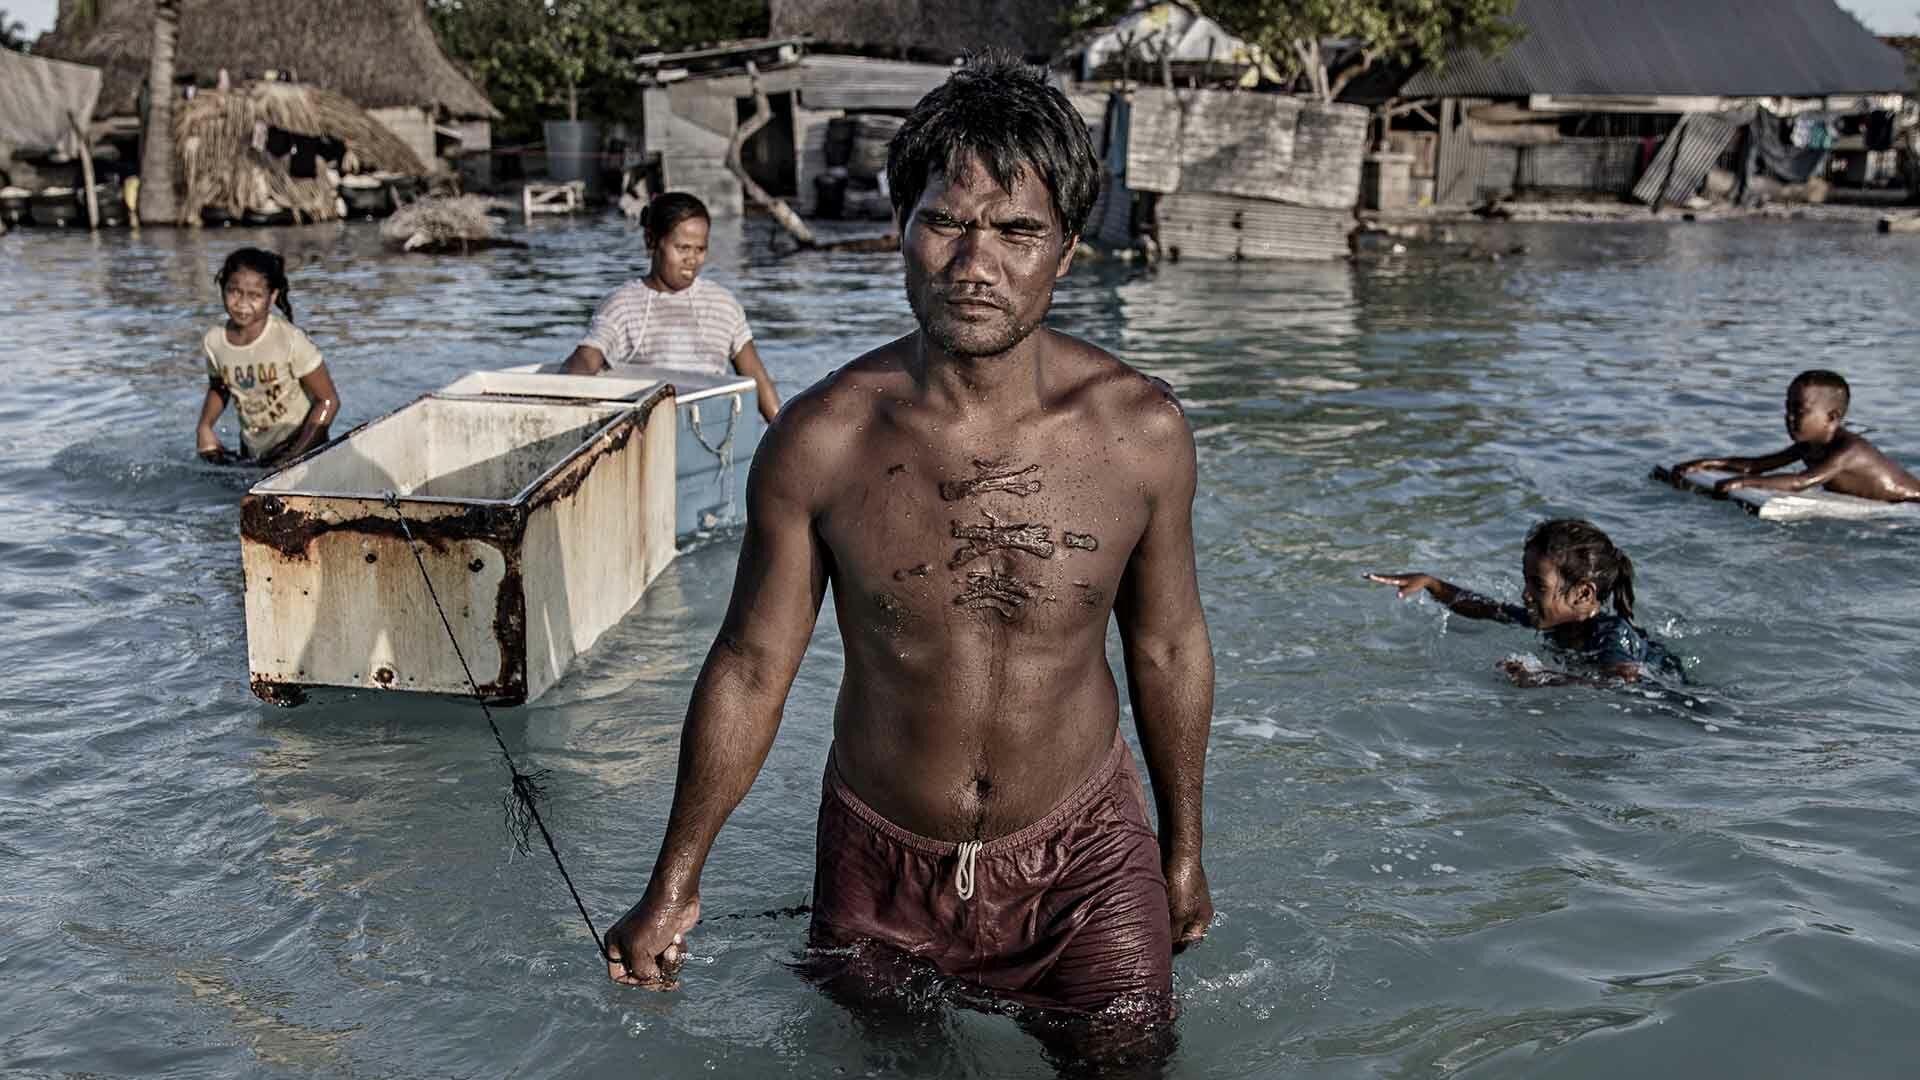 Villagers in Kiribati affected by flooding